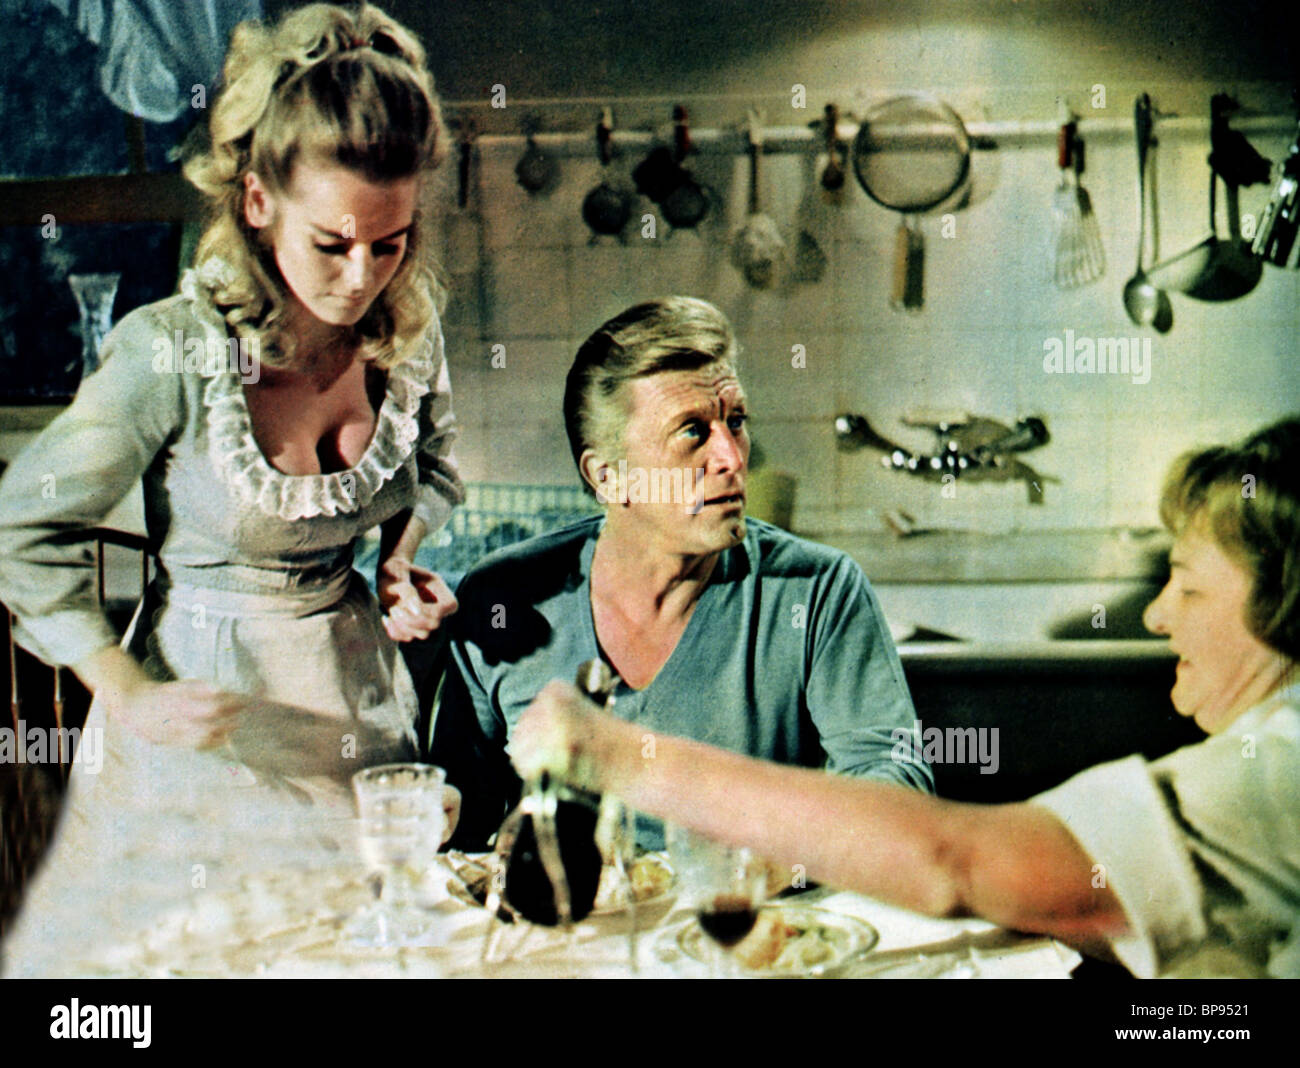 KIRK DOUGLAS SHARON FARRELL A LOVELY WAY TO DIE 1968